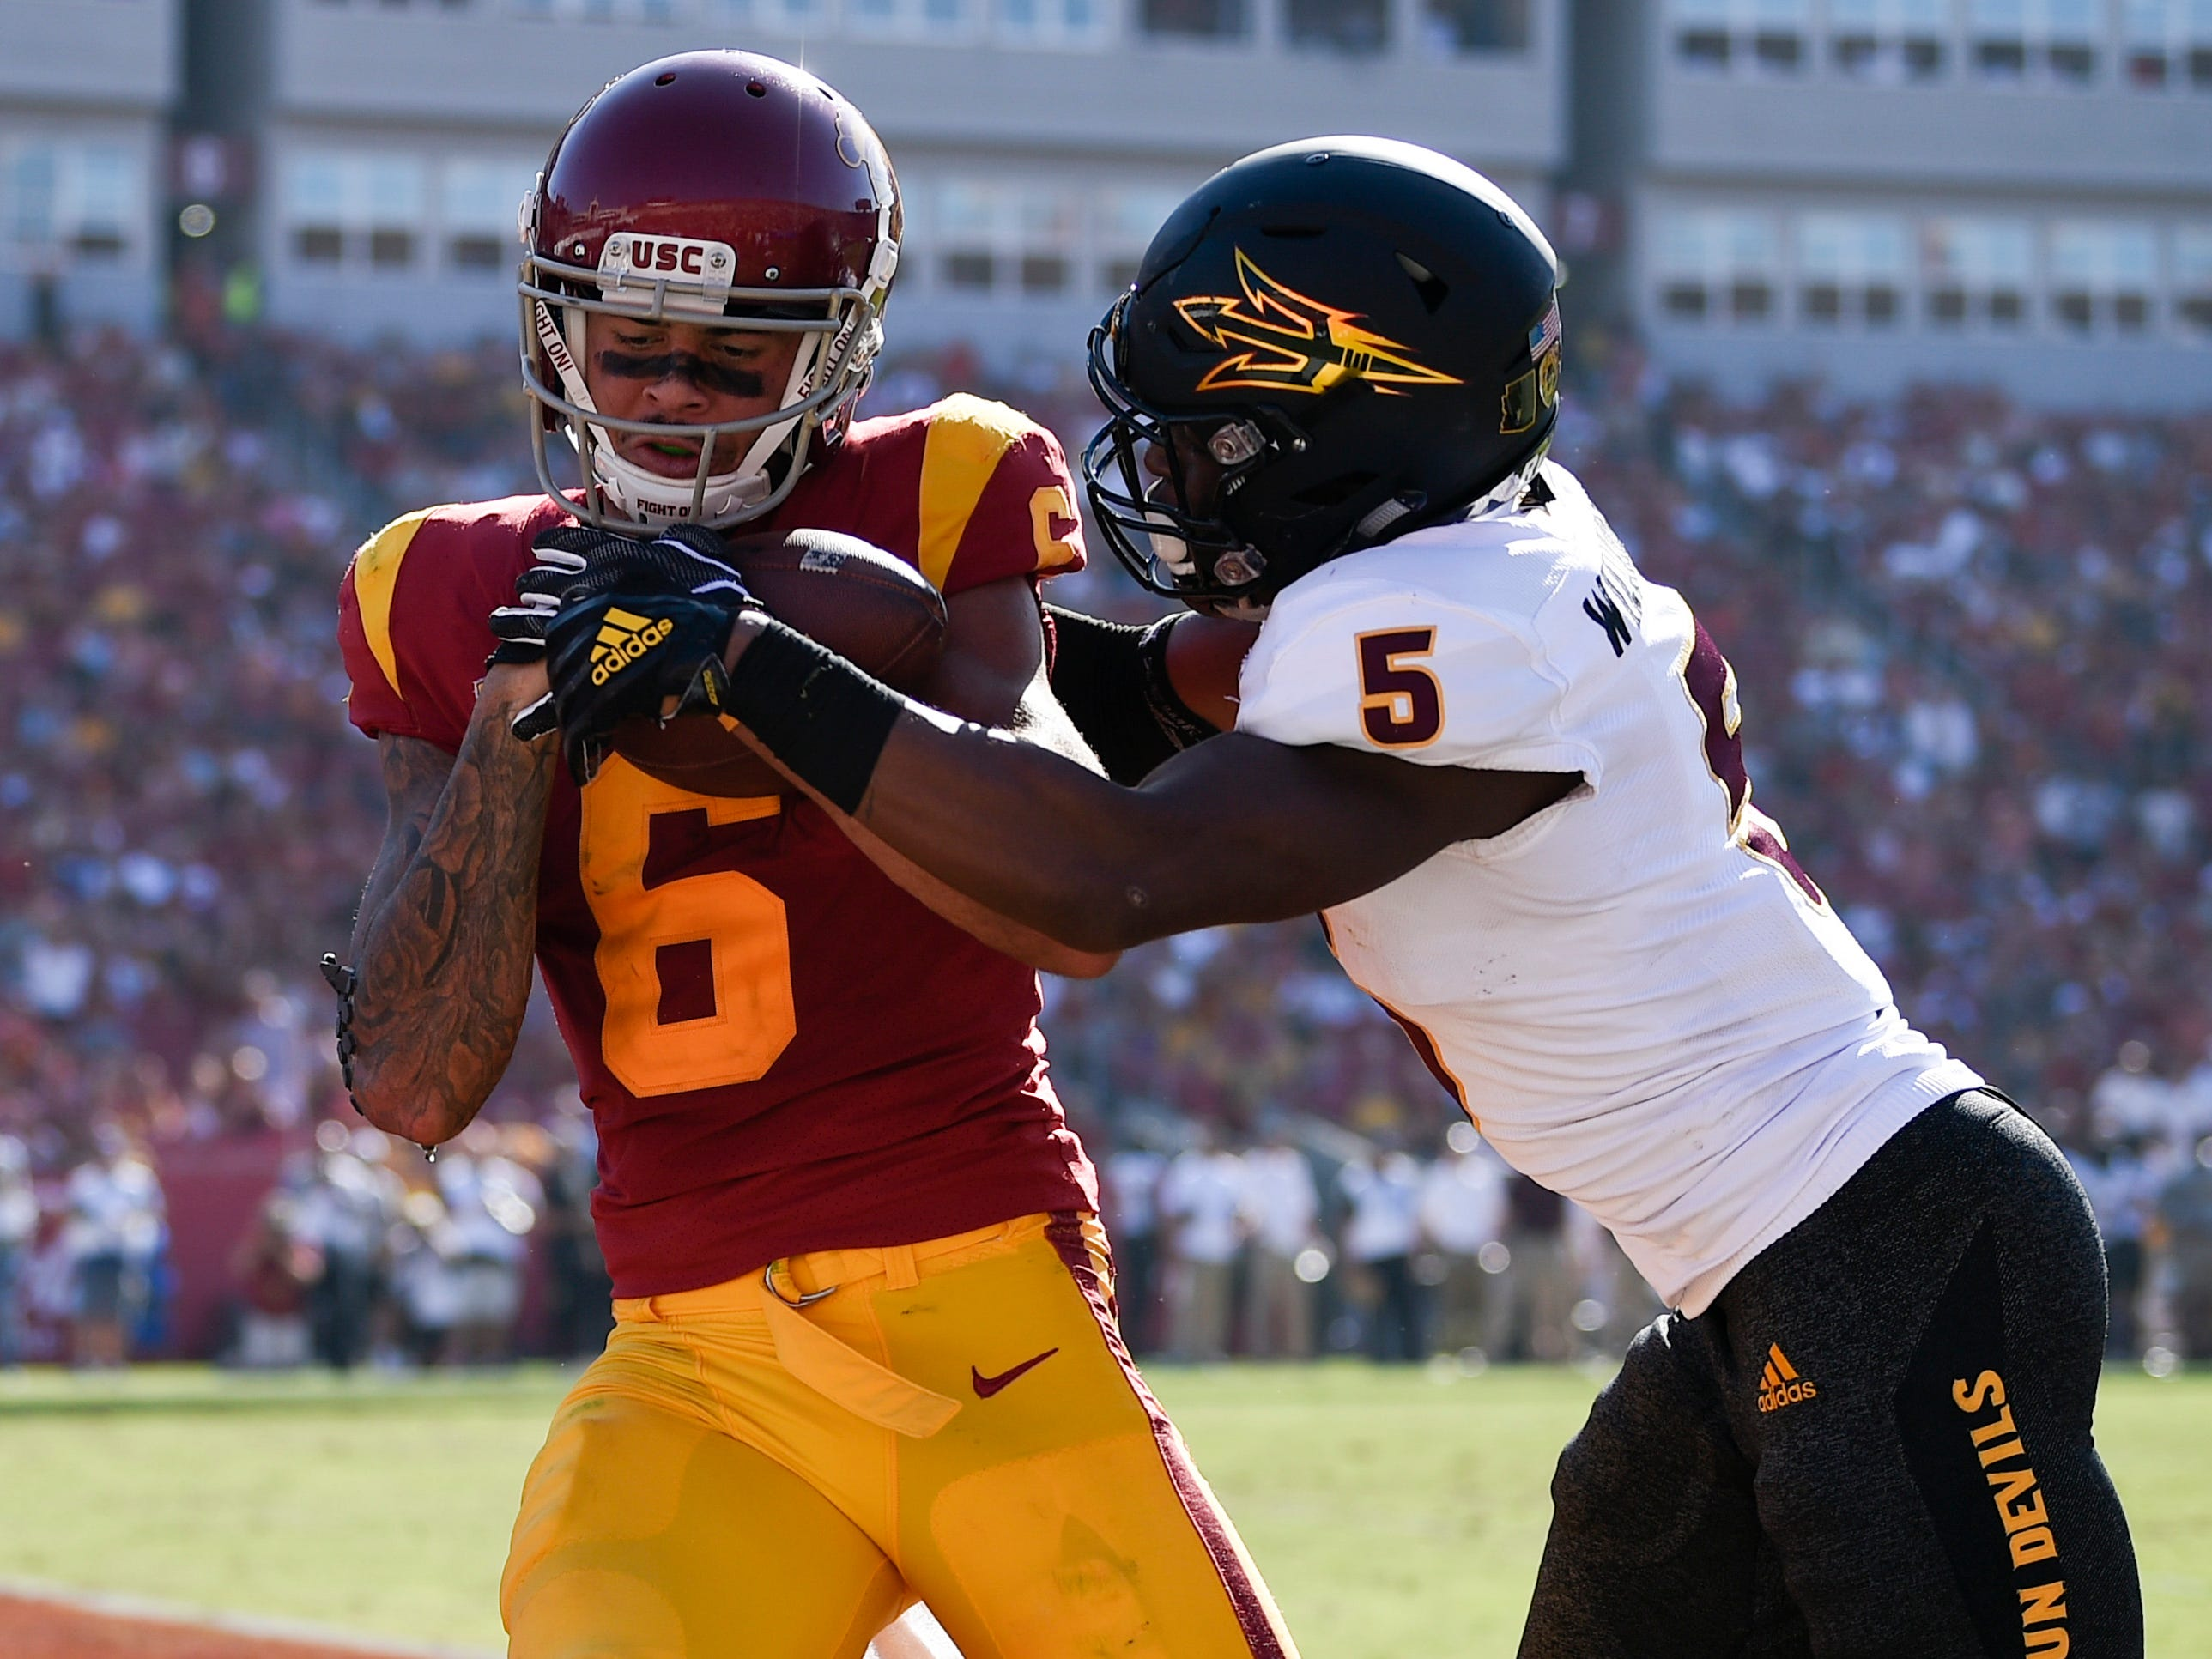 Oct 27, 2018; Los Angeles, CA, USA; Southern California Trojans wide receiver Michael Pittman Jr. (6) catches a touchdown pass while Arizona State Sun Devils defensive back Kobe Williams (5) defends during the second half at Los Angeles Memorial Coliseum. Mandatory Credit: Kelvin Kuo-USA TODAY Sports